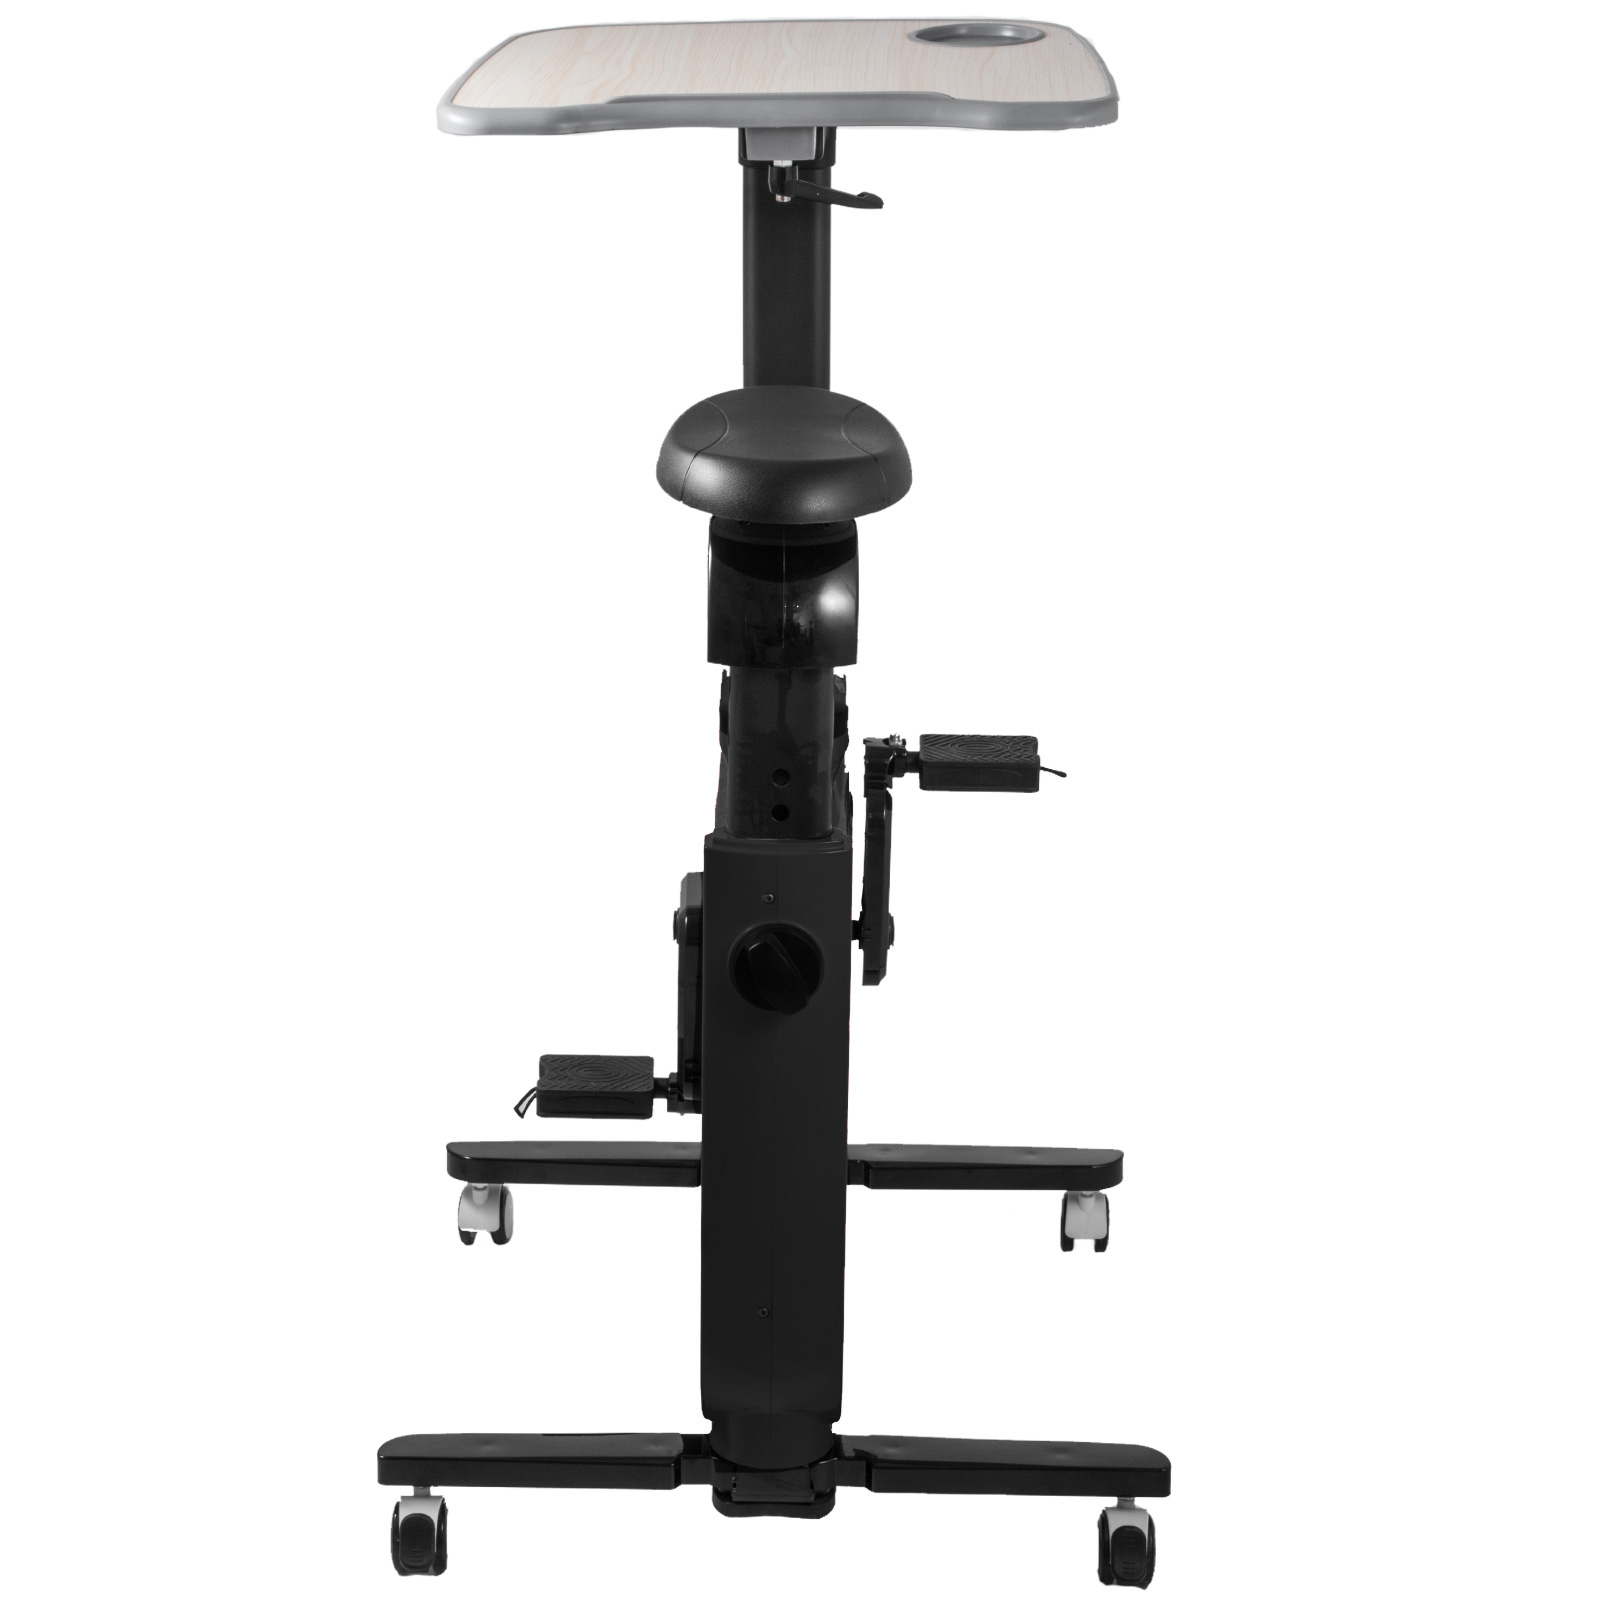 Multi-style-Magnetic-Exercise-Bike-office-Bicycle-under-Desk-Fitness-Cardio miniature 24